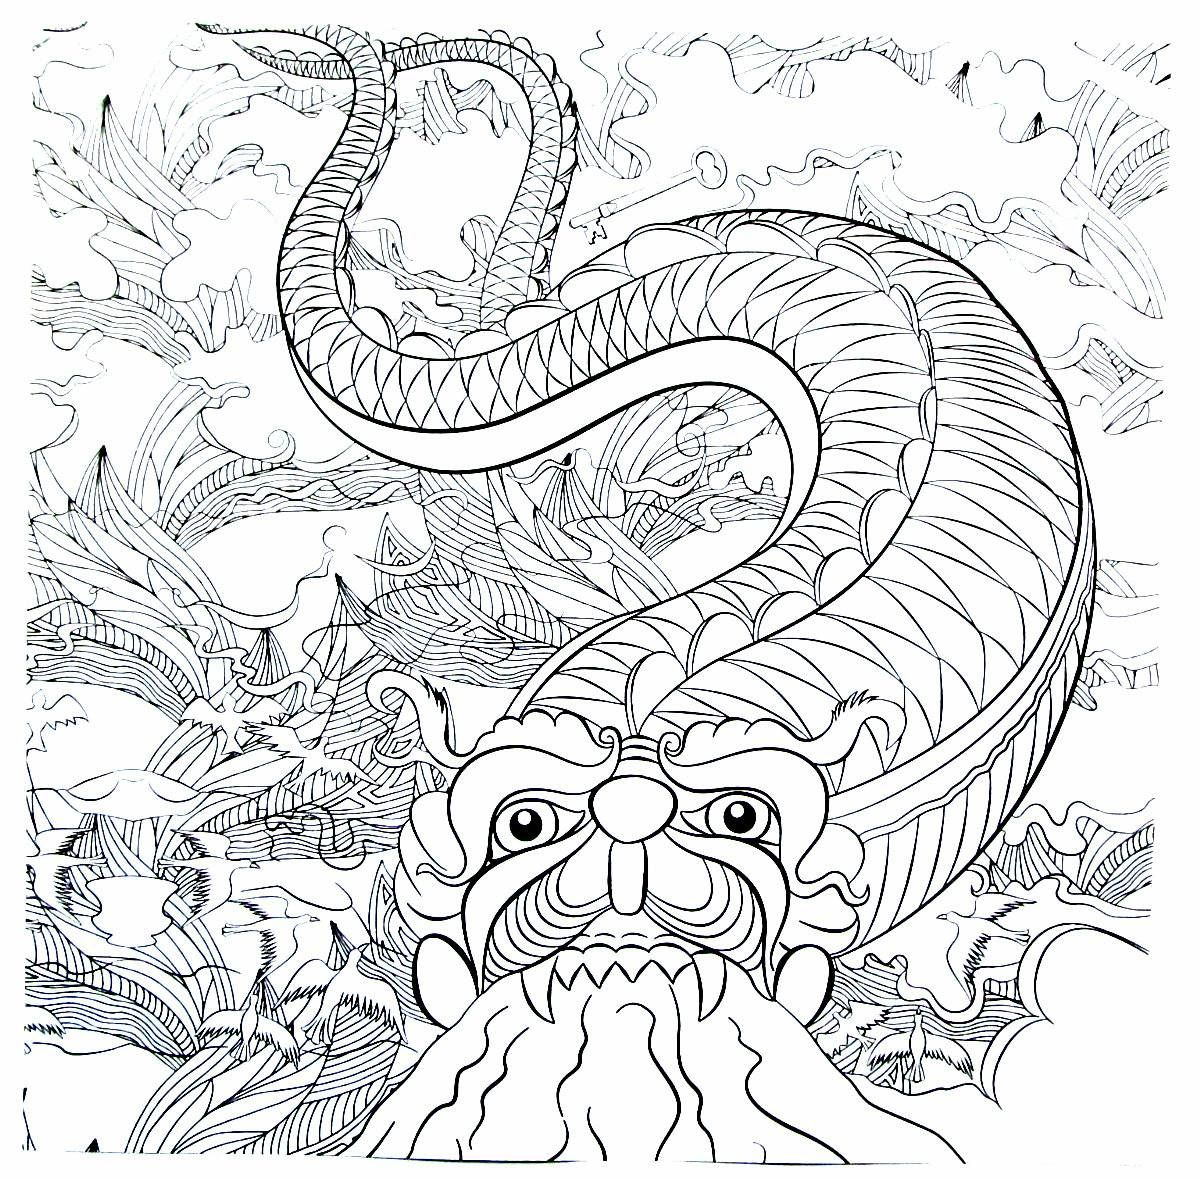 Fire breathing dragon detailed coloring book page for adults ...